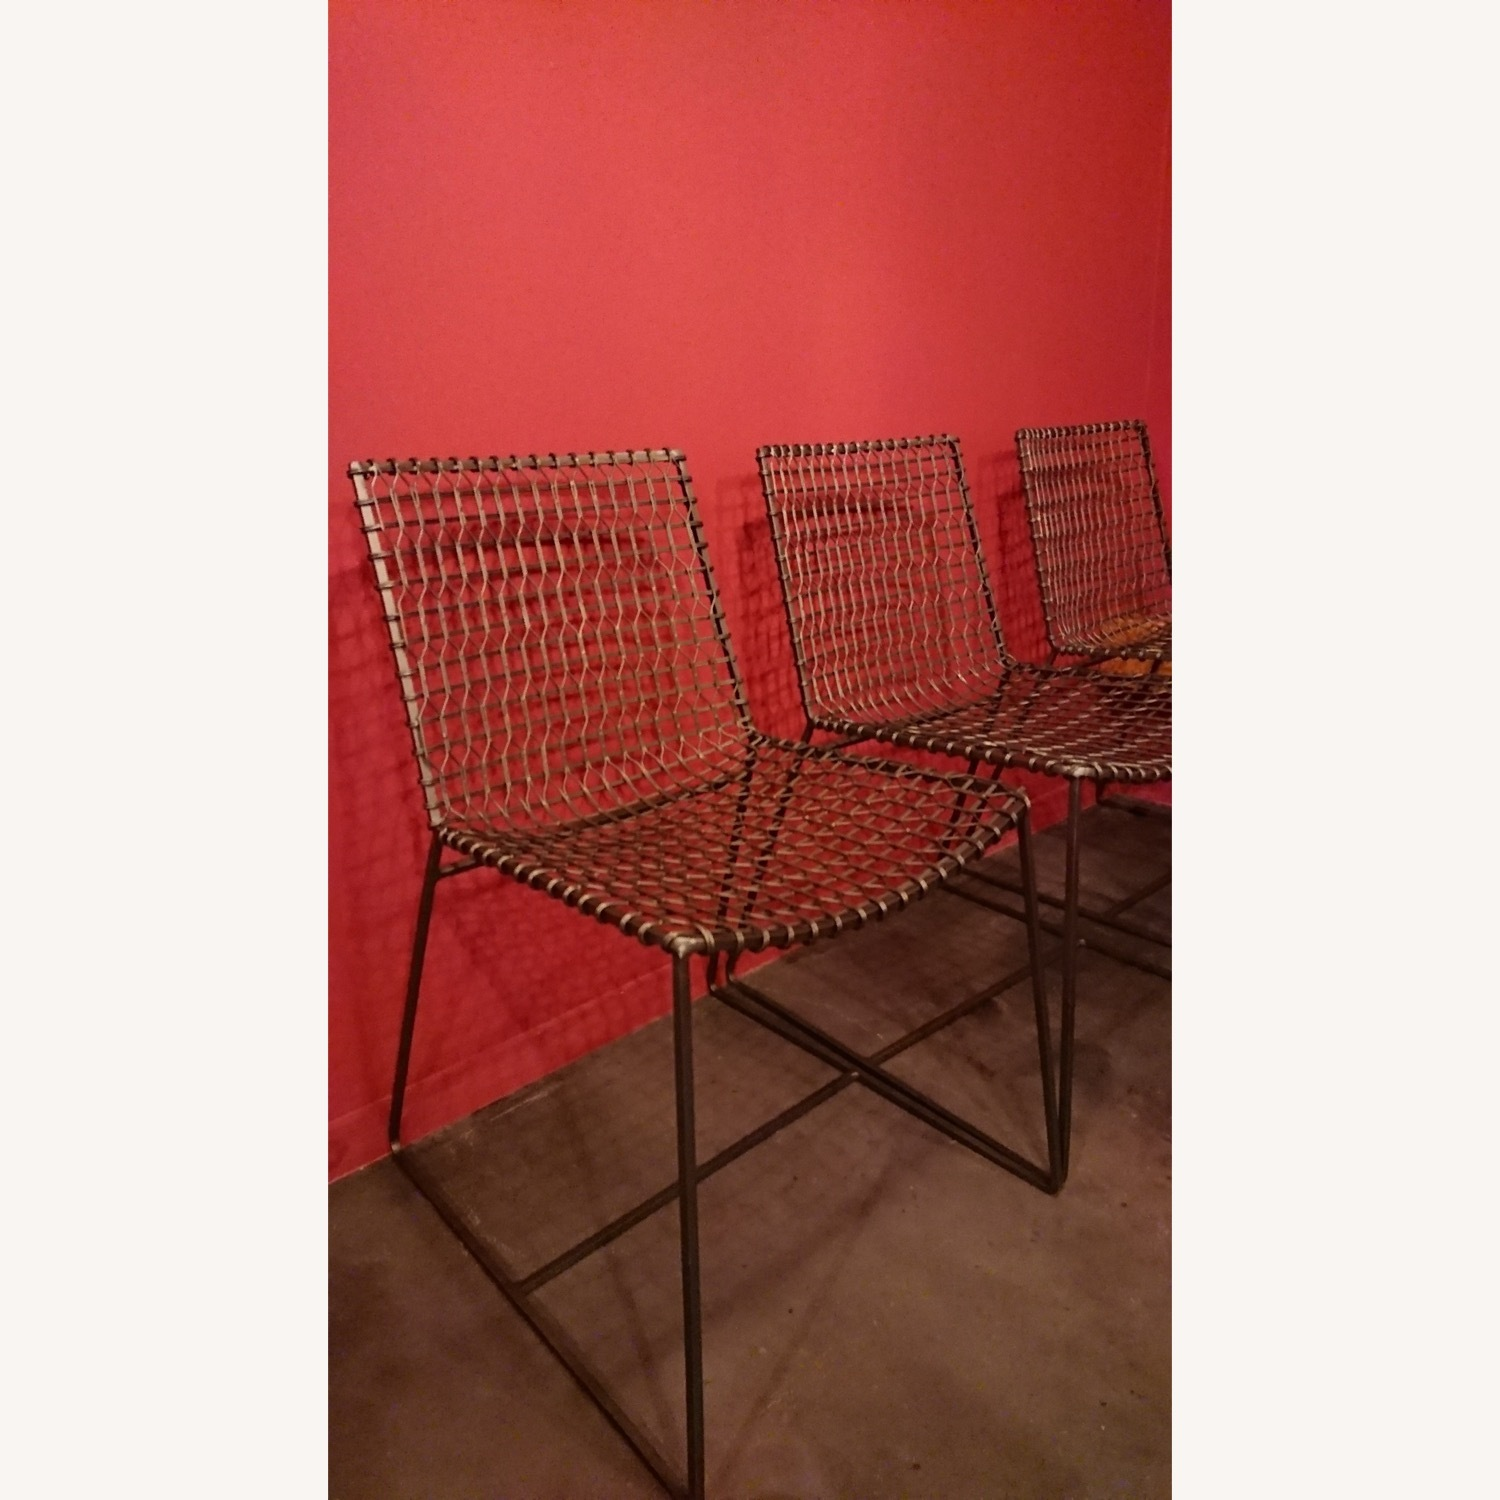 Crate & Barrel Metal Dining Chairs - image-2